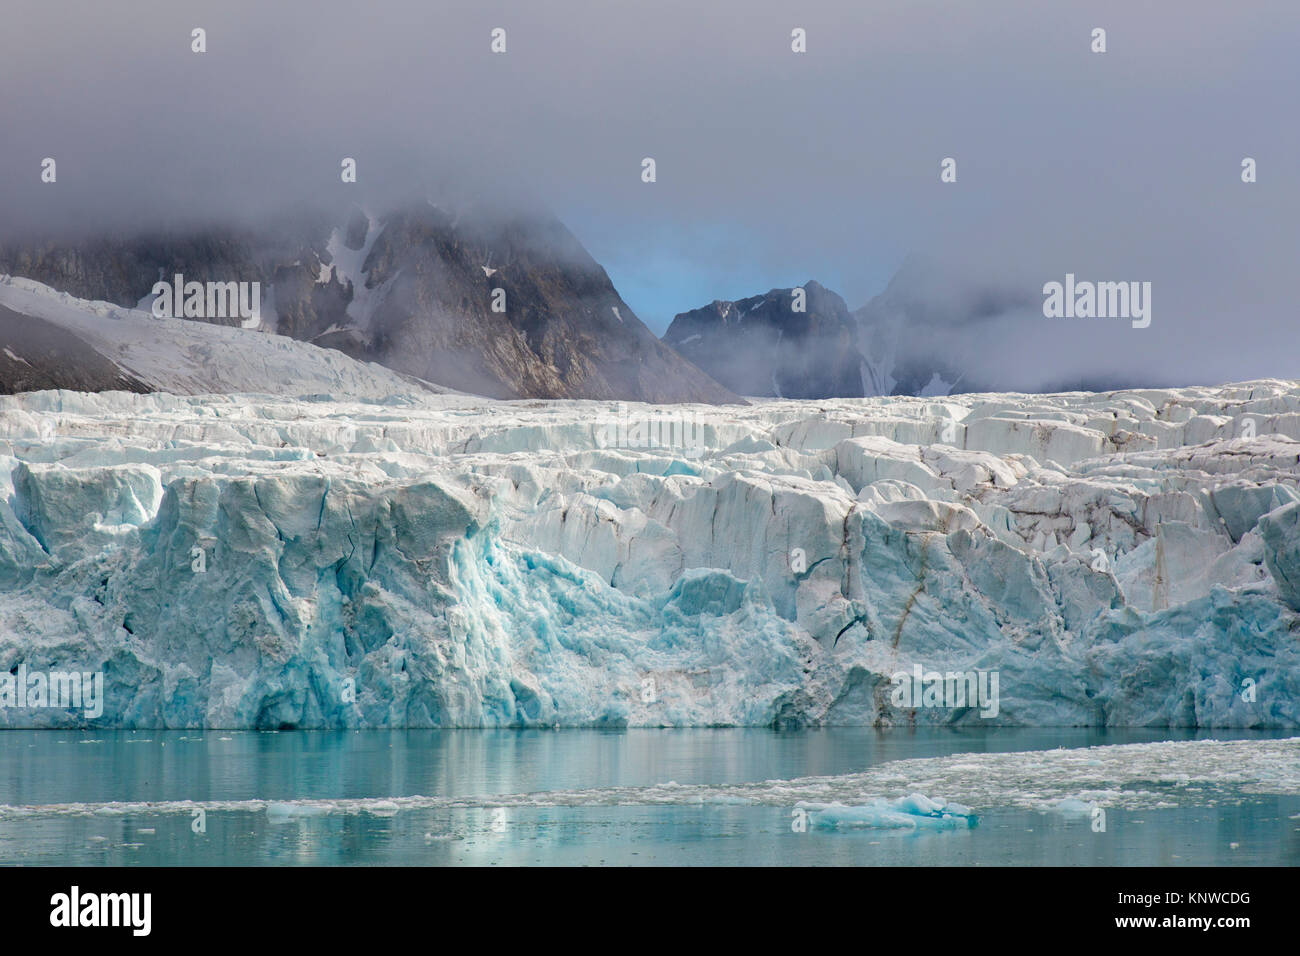 Waggonwaybreen, glacier in Albert I Land at Spitsbergen / Svalbard calving into Magdalenefjorden, Norway - Stock Image